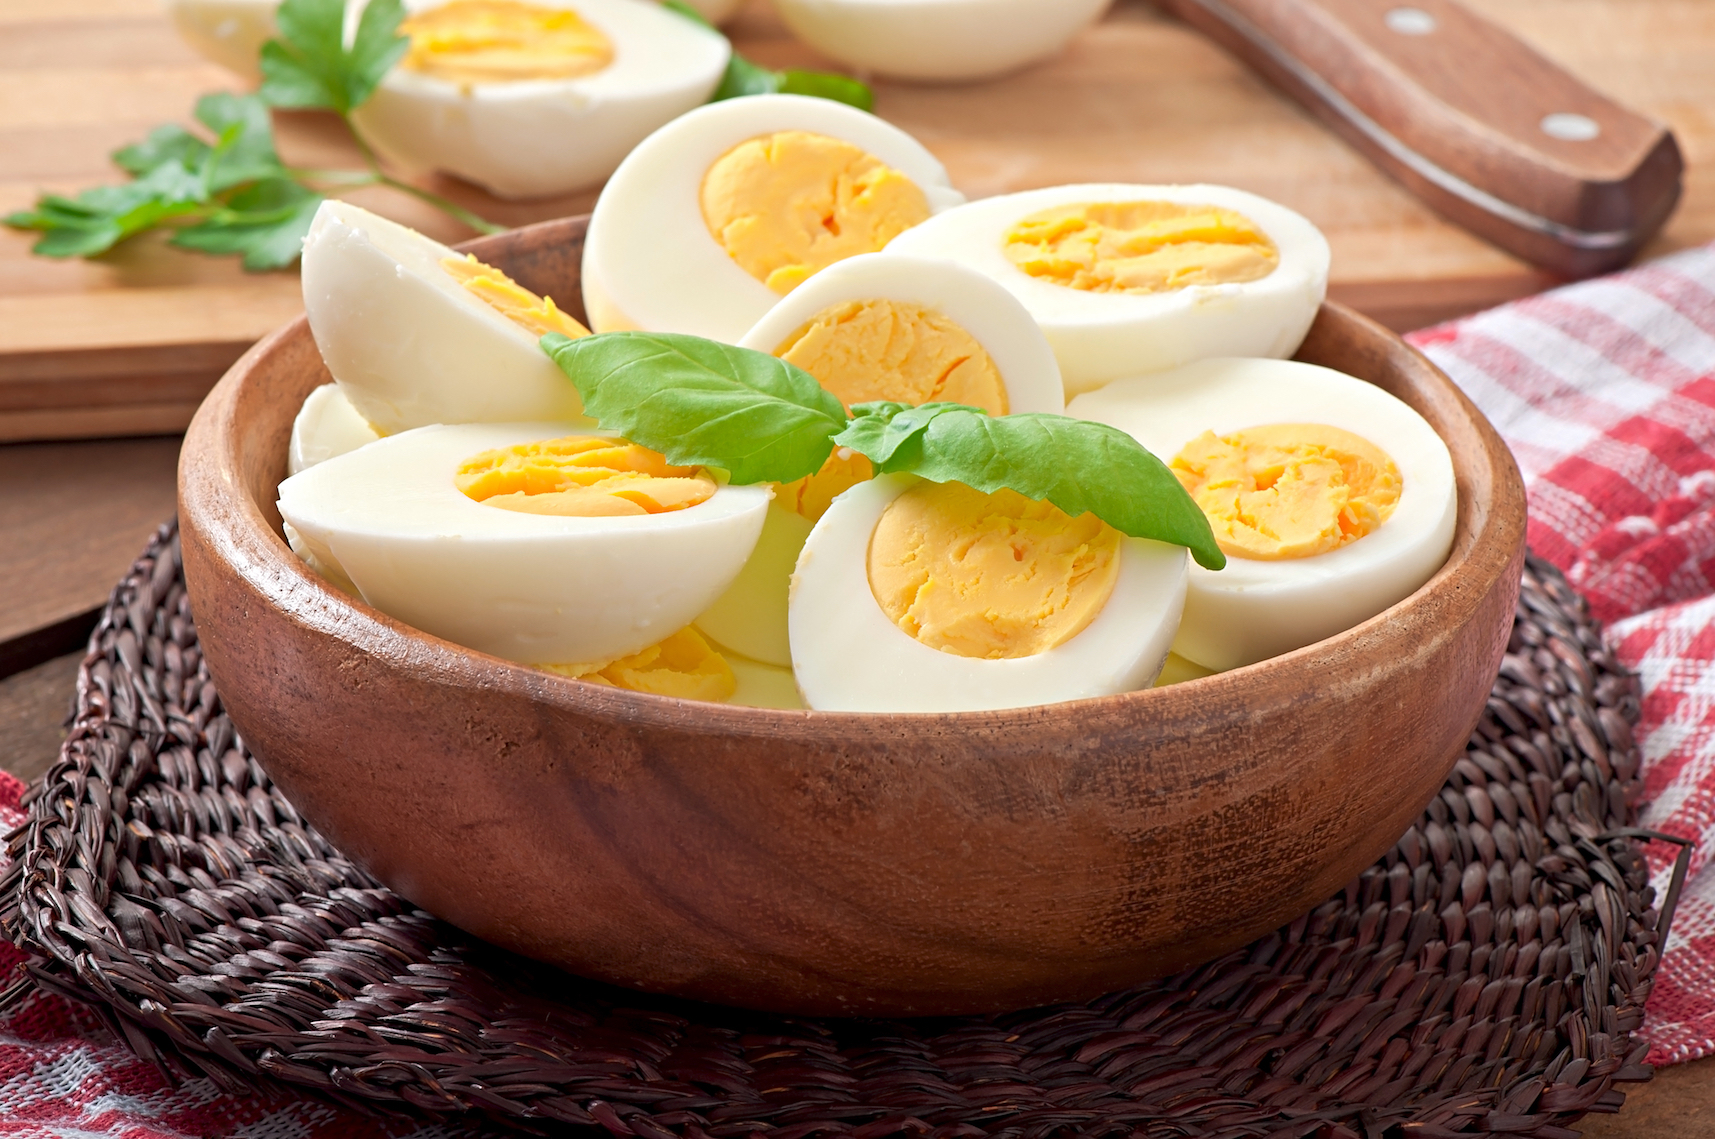 A new study found that eating egg whites versus whole eggs has a drastically different impact on the muscle's ability to process protein.